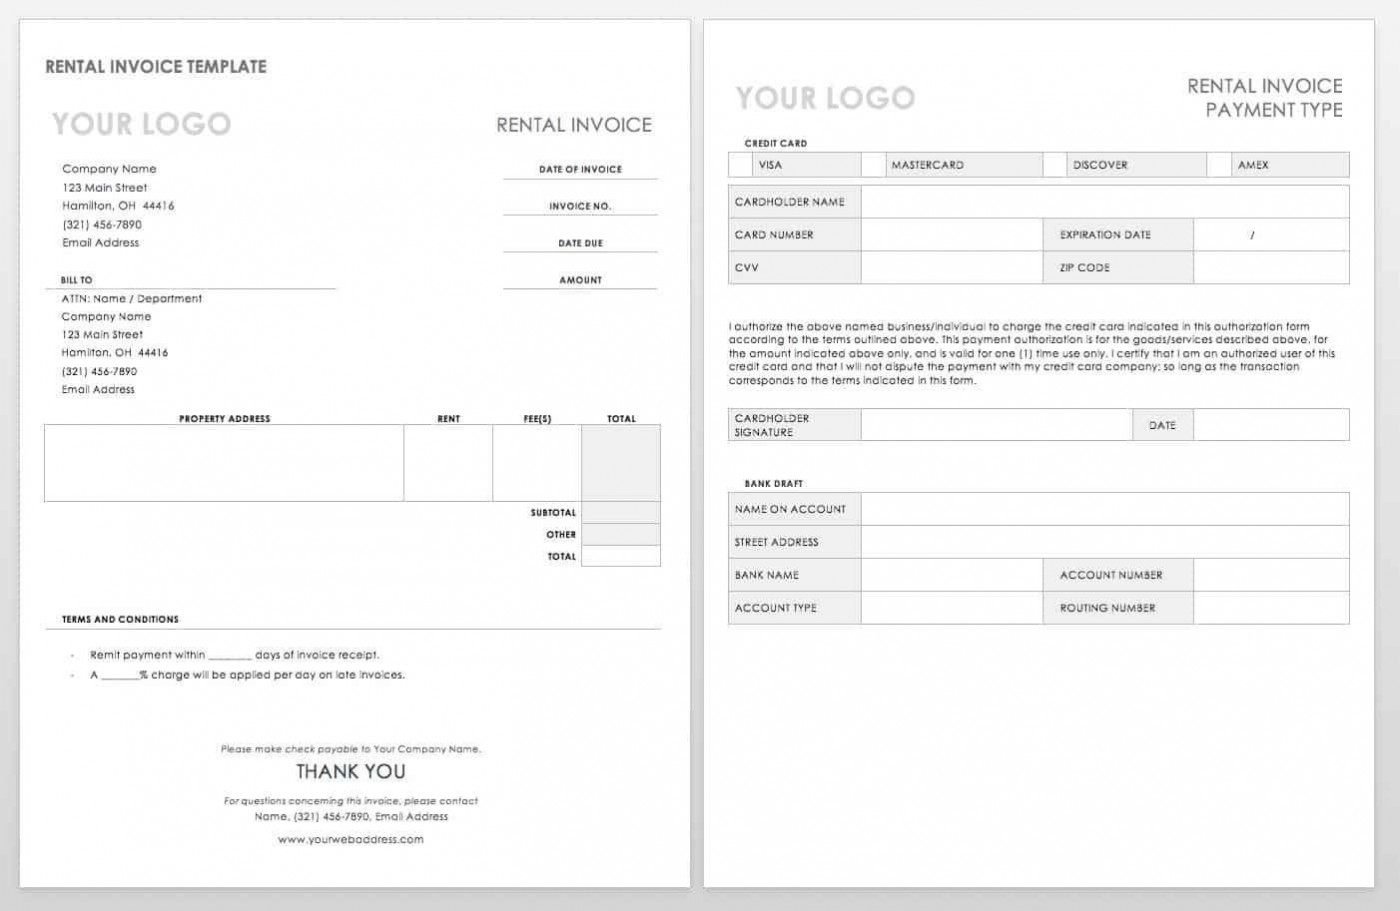 007 Unique House Rent Receipt Template India Doc Example  Format Download1400